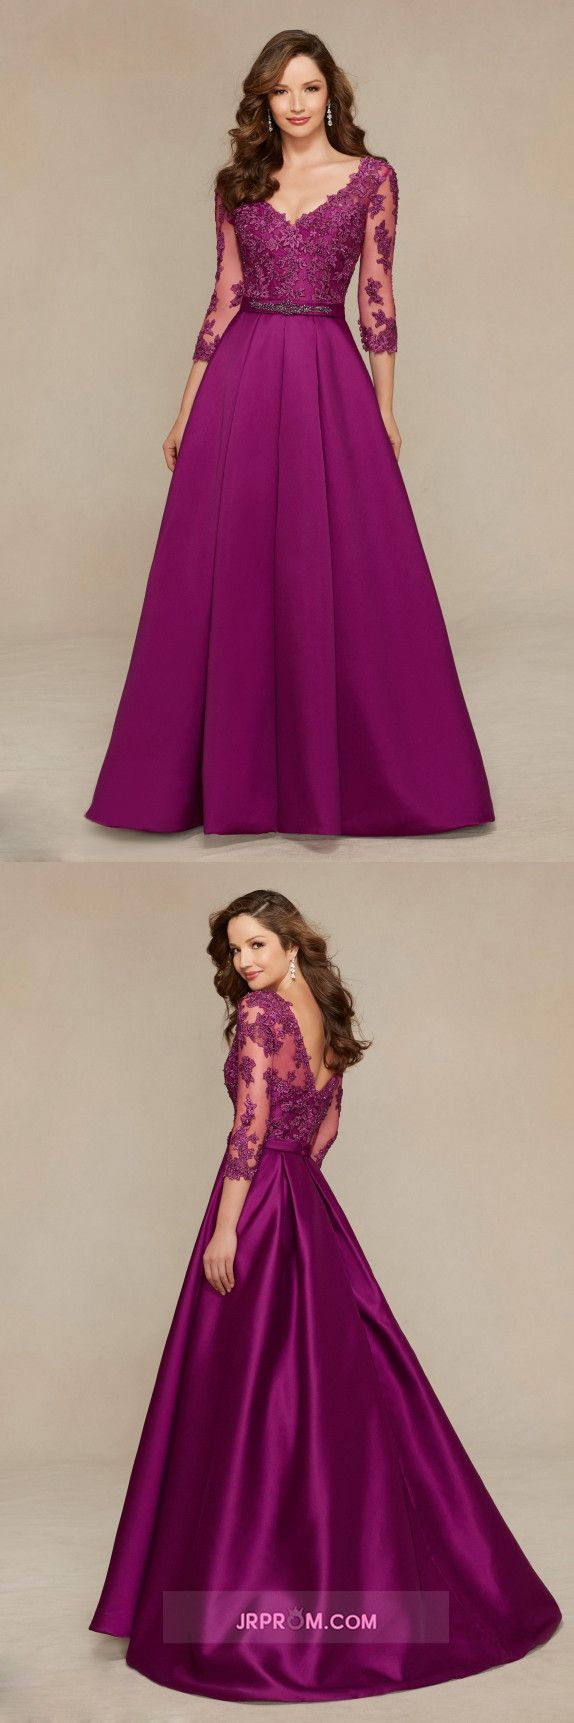 V Neck A Line Mother Of The Bride Dresses Satin With Applique And Beads 3/4 Length Sleeves Item Code:#JRP1YGSSMA